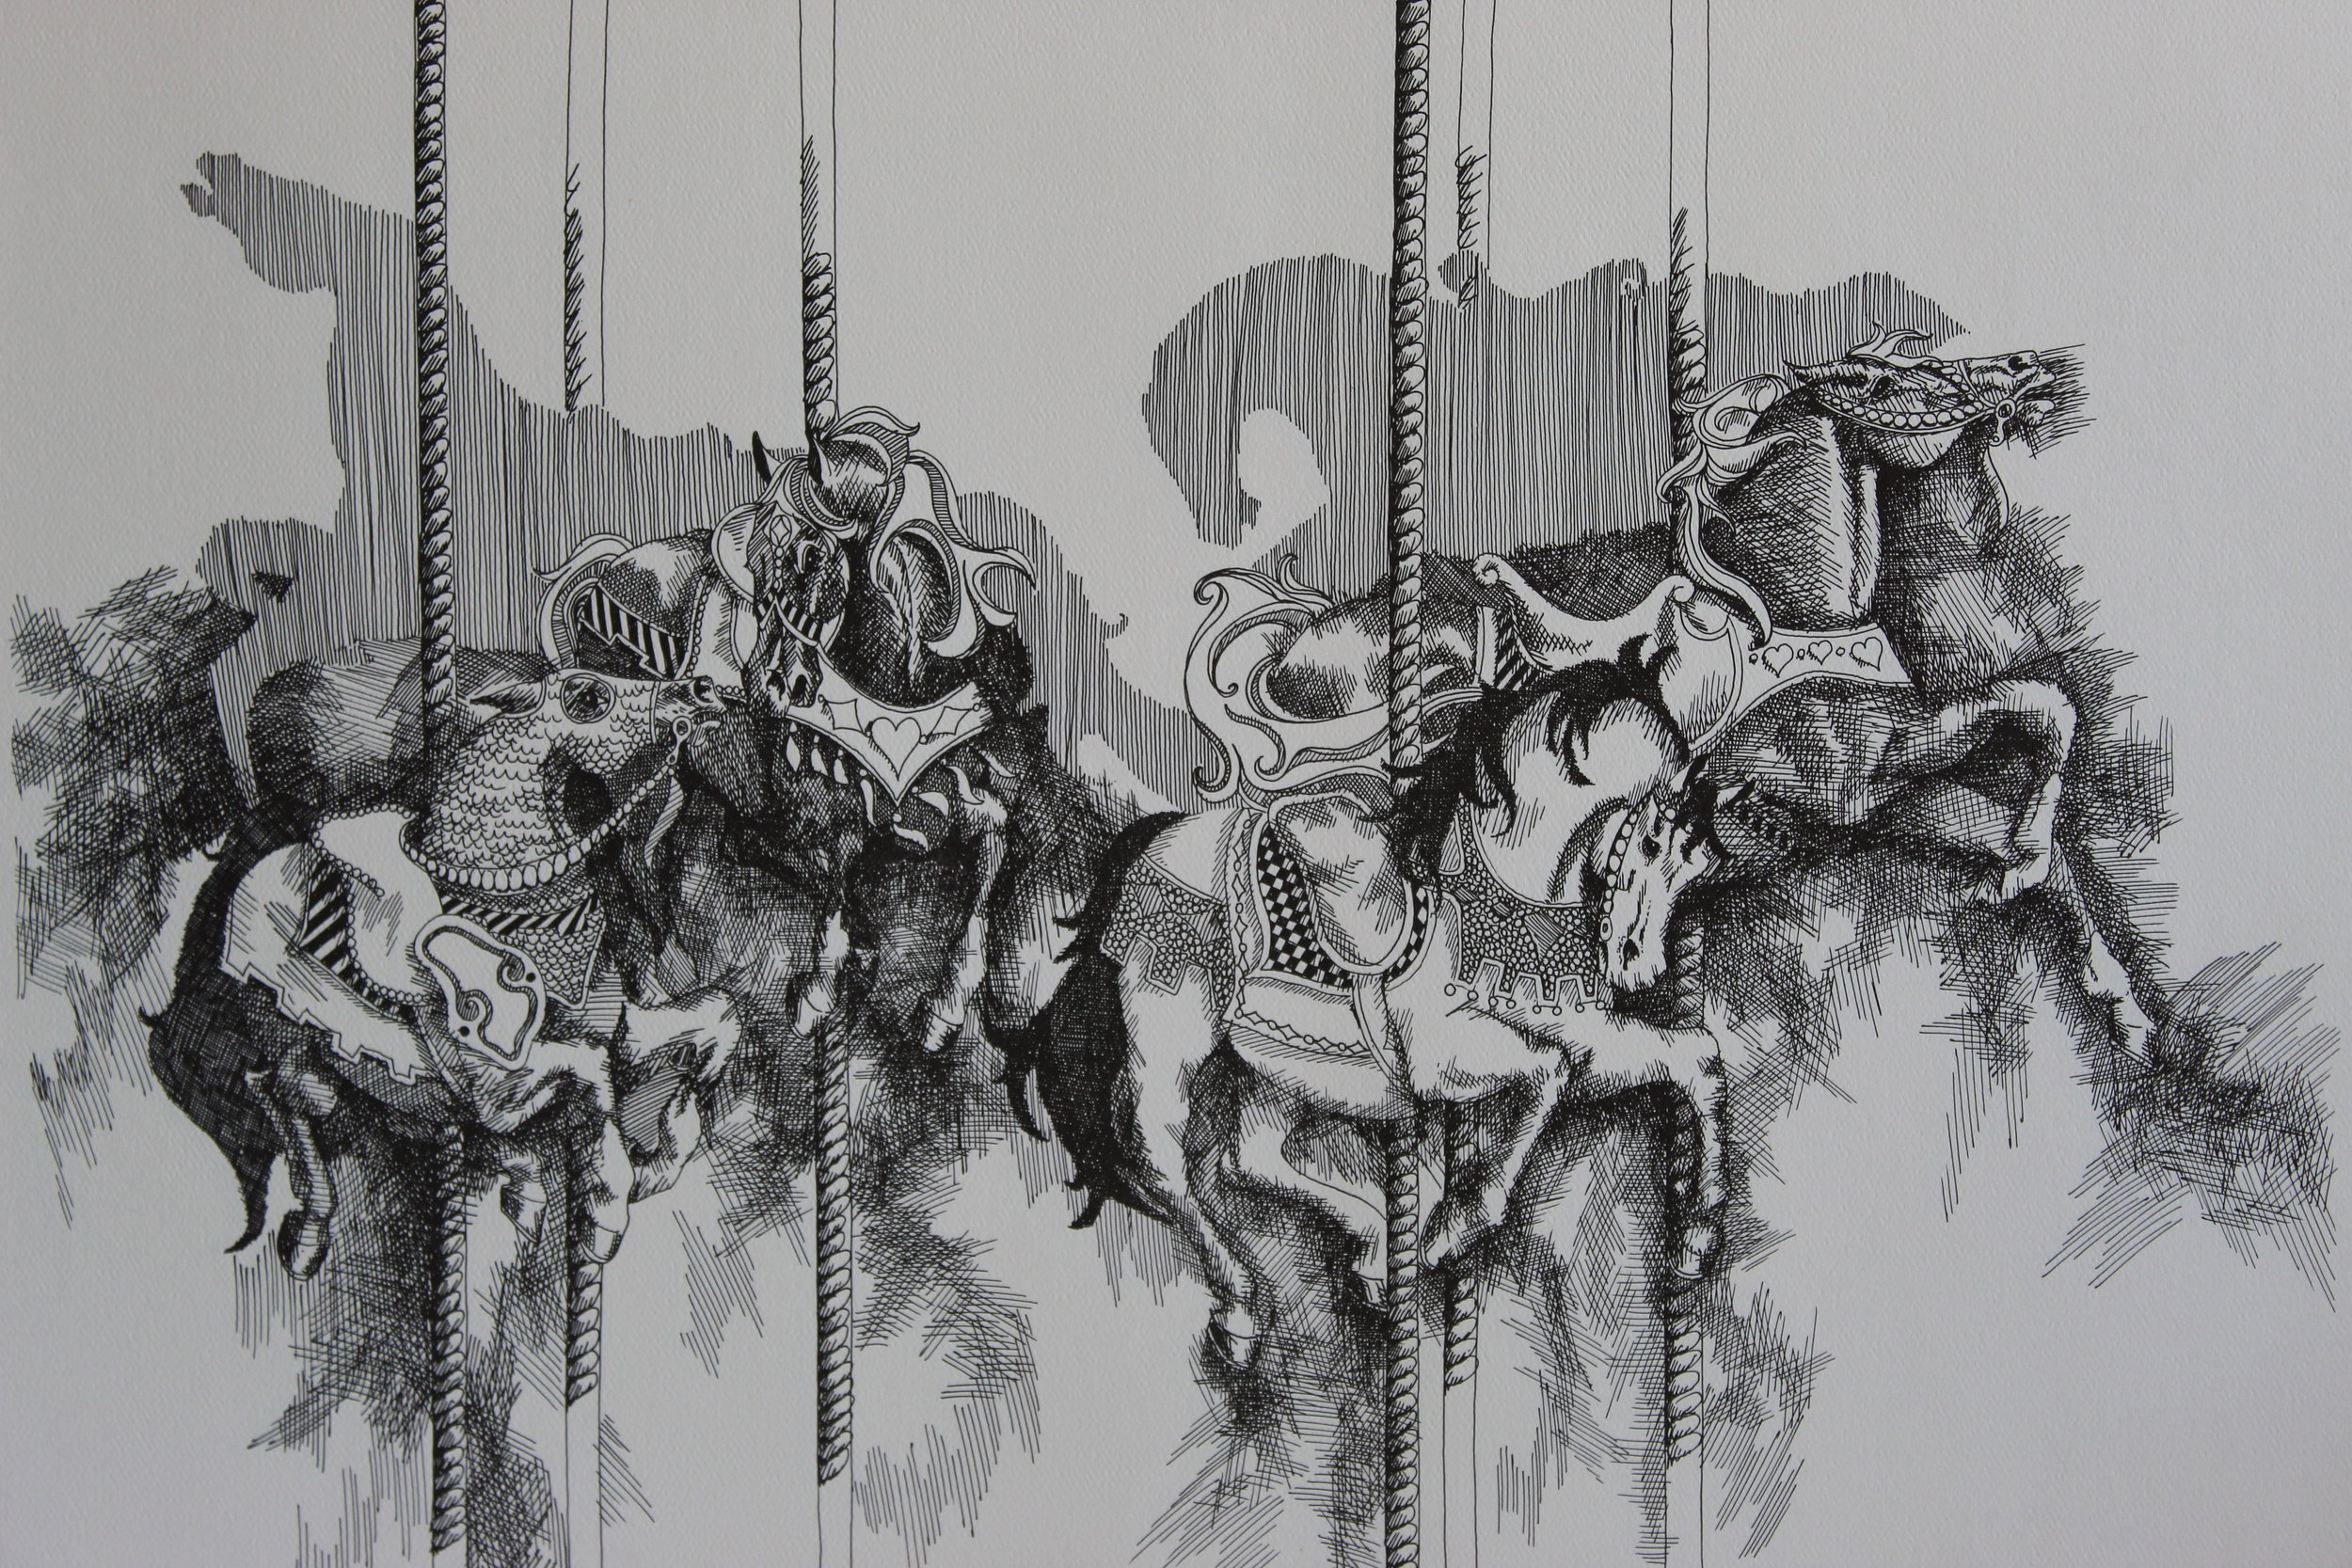 "CAROUSEL by SIX. 24 x 16"". Pen and Ink limited edition Lithographs. Can be hand colored. $55. $80"